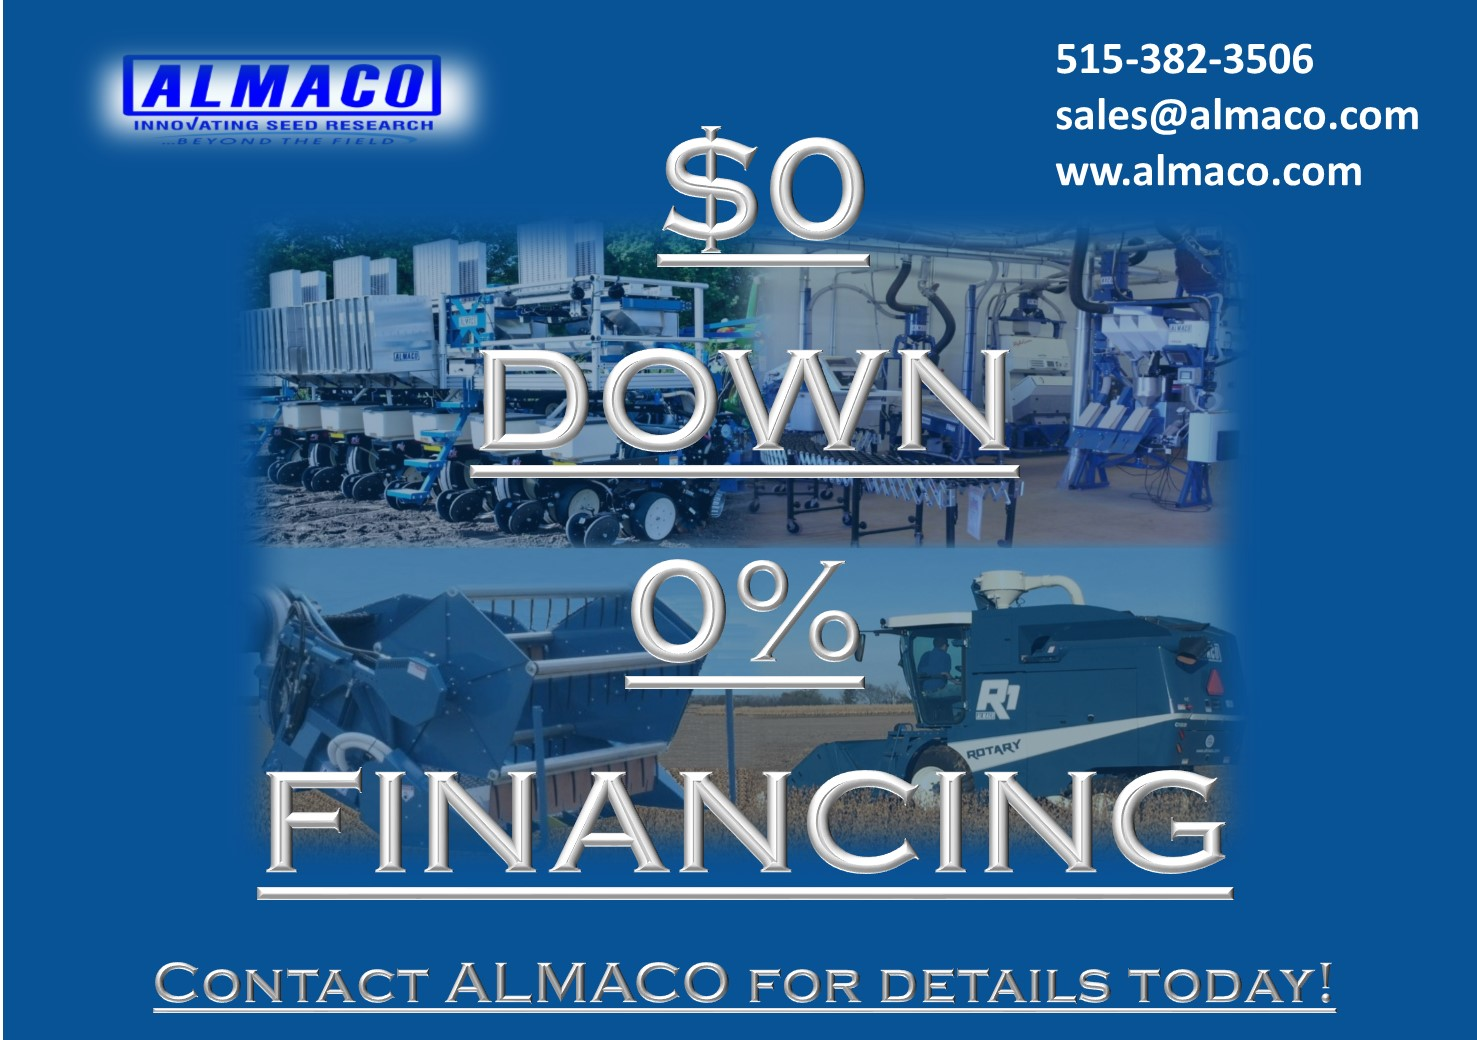 $0 DOWN AND 0% APR FINANCING